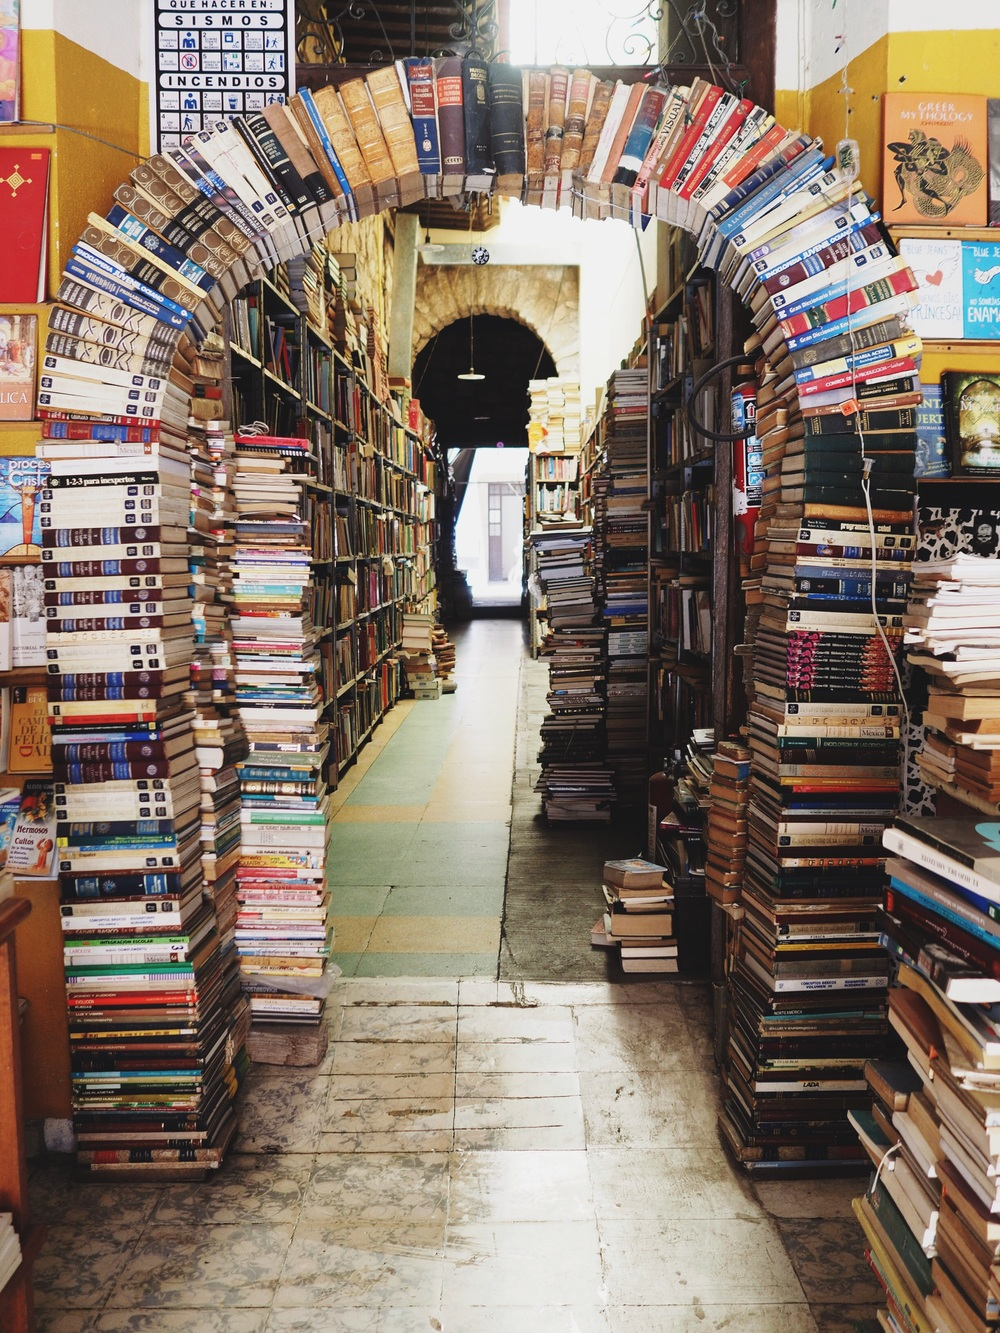 We stumbled upon this charming used bookstore